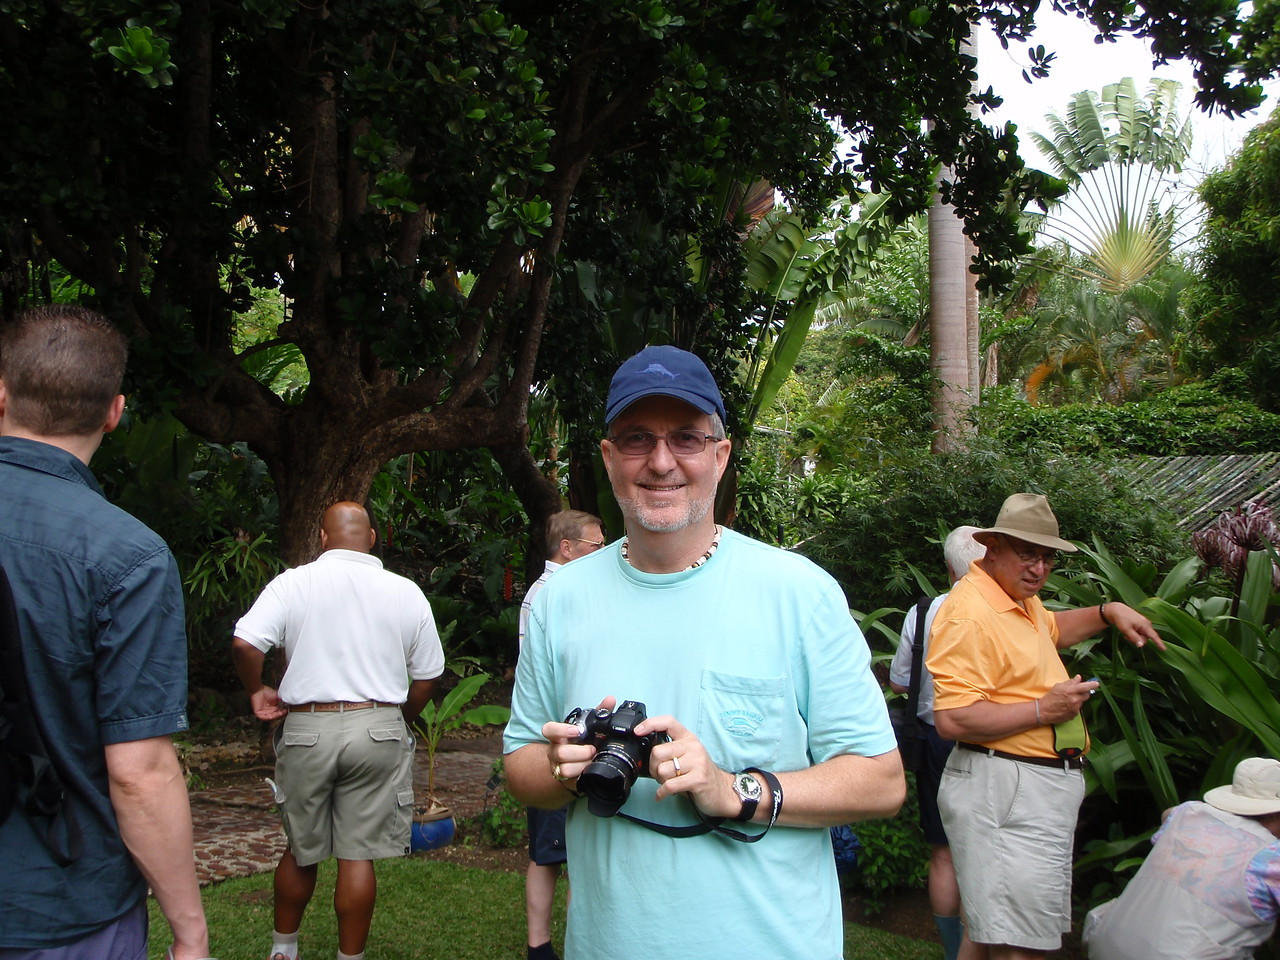 Next stop is the Andromeda Botanical Gardens where Kenny had ample opportunity to use his camera.